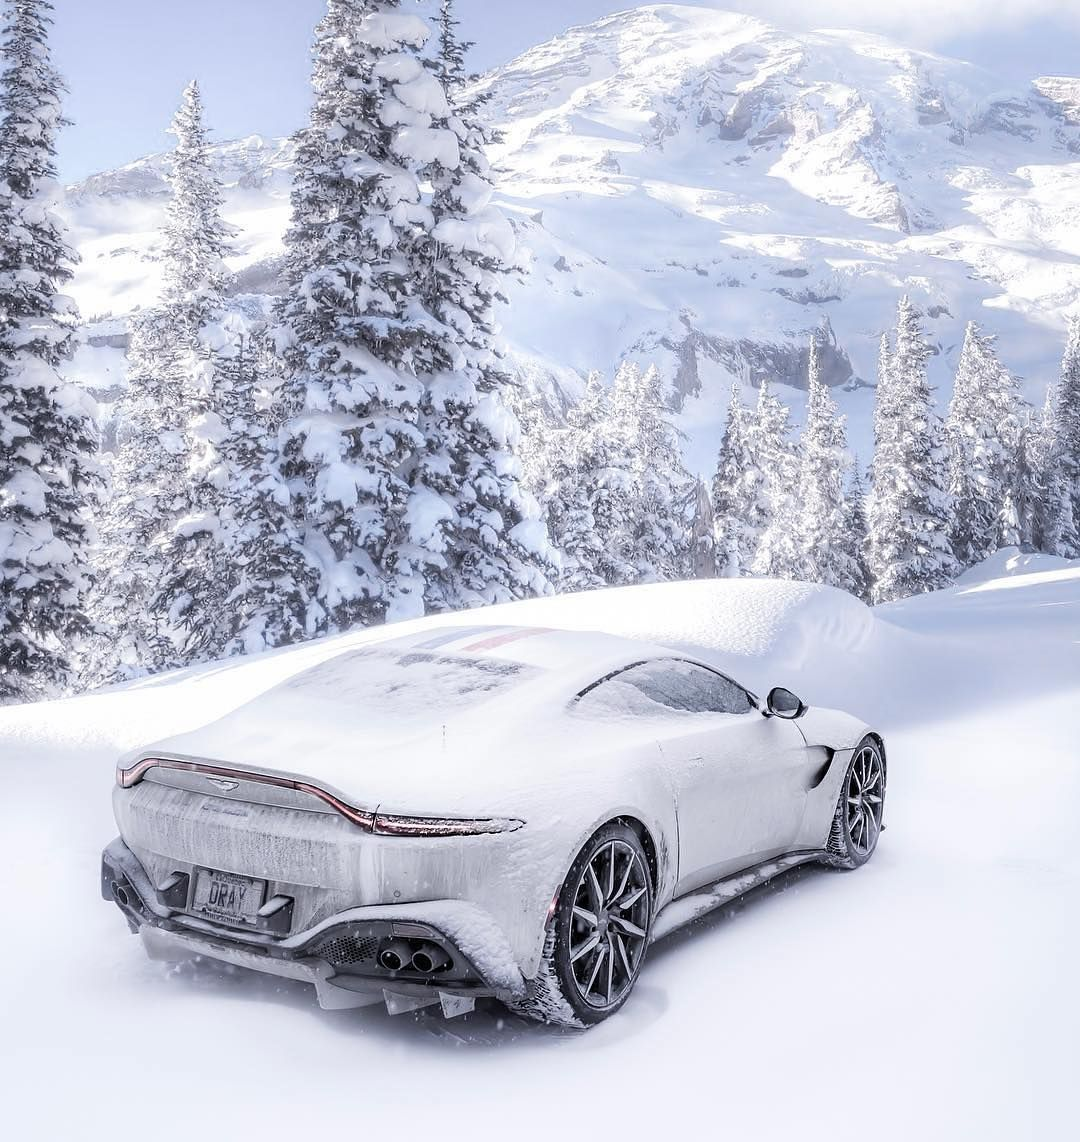 Carlifestyle On Instagram What S The Best Sports Car For The Snow This Vantage Driven By Drivewithdray Carlifestyle Aston Martin Aston Martin Vantage Car